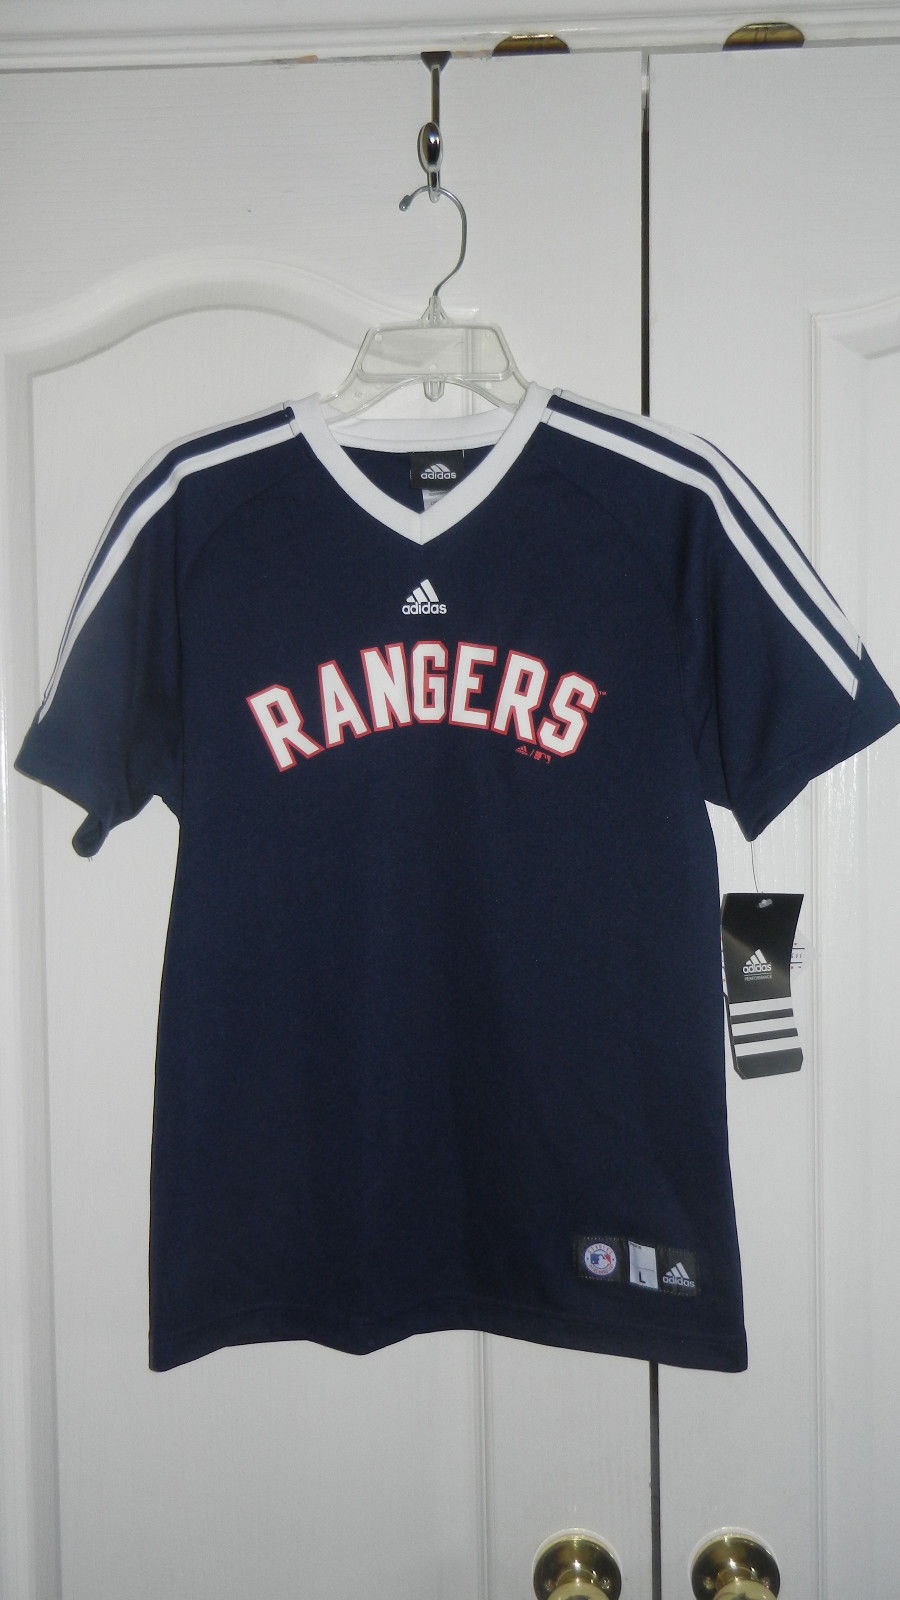 Primary image for Adidas Texas Rangers MLB Performance Jersey Youth Large (14/16) New NWT Licensed